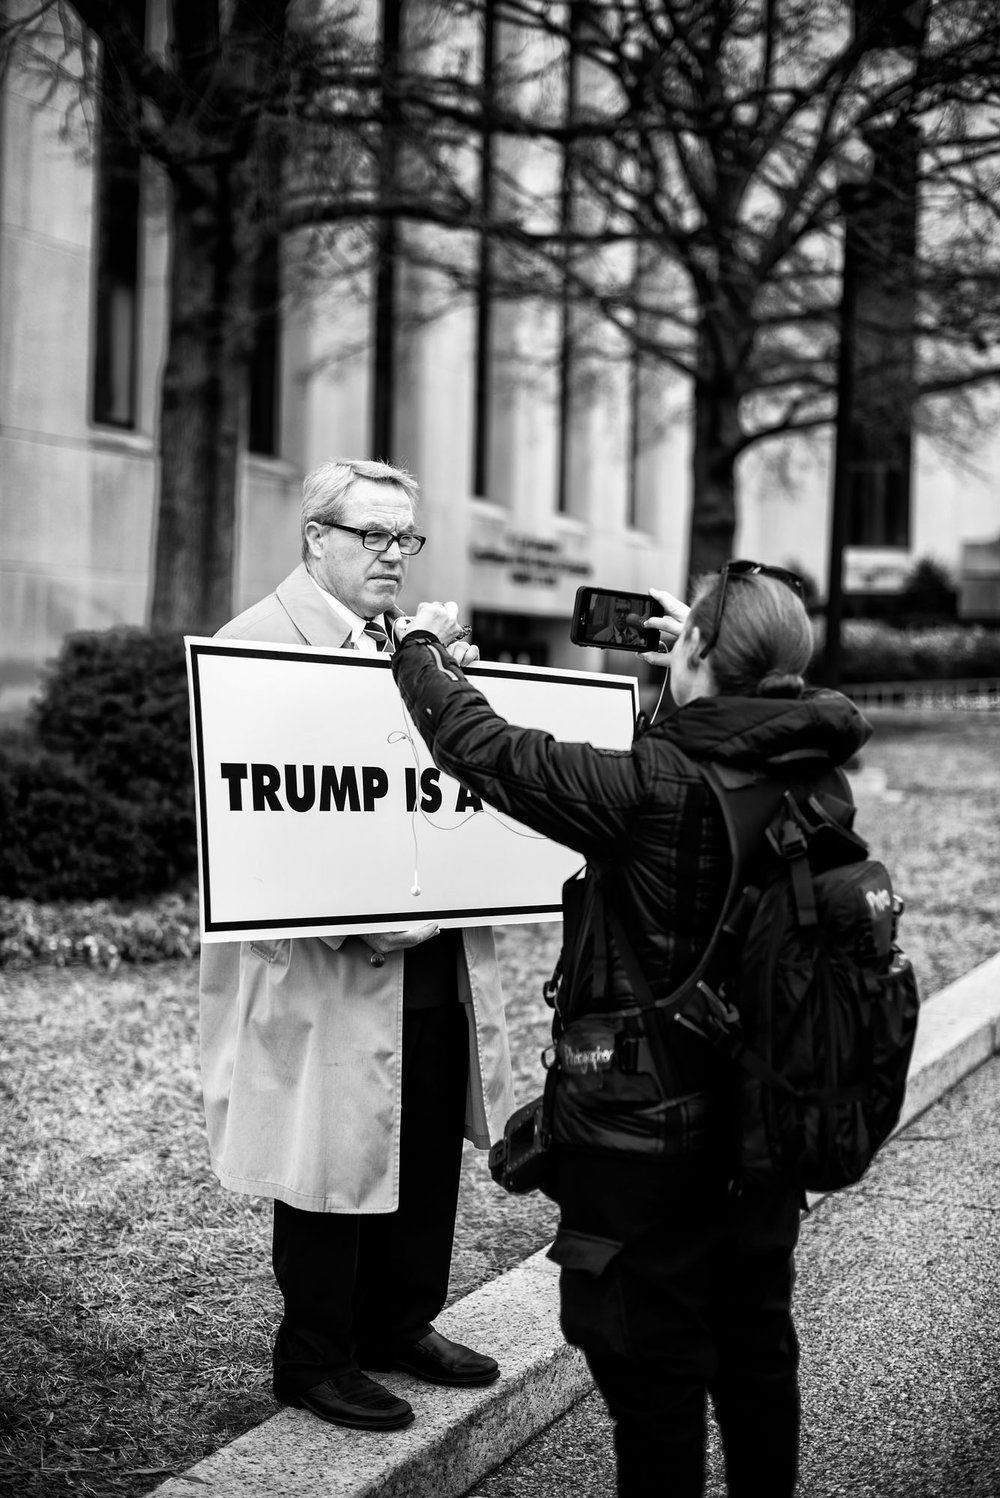 A protester is interviewed prior to the Presidential Inauguration in Washington, DC on January 20, 2017.